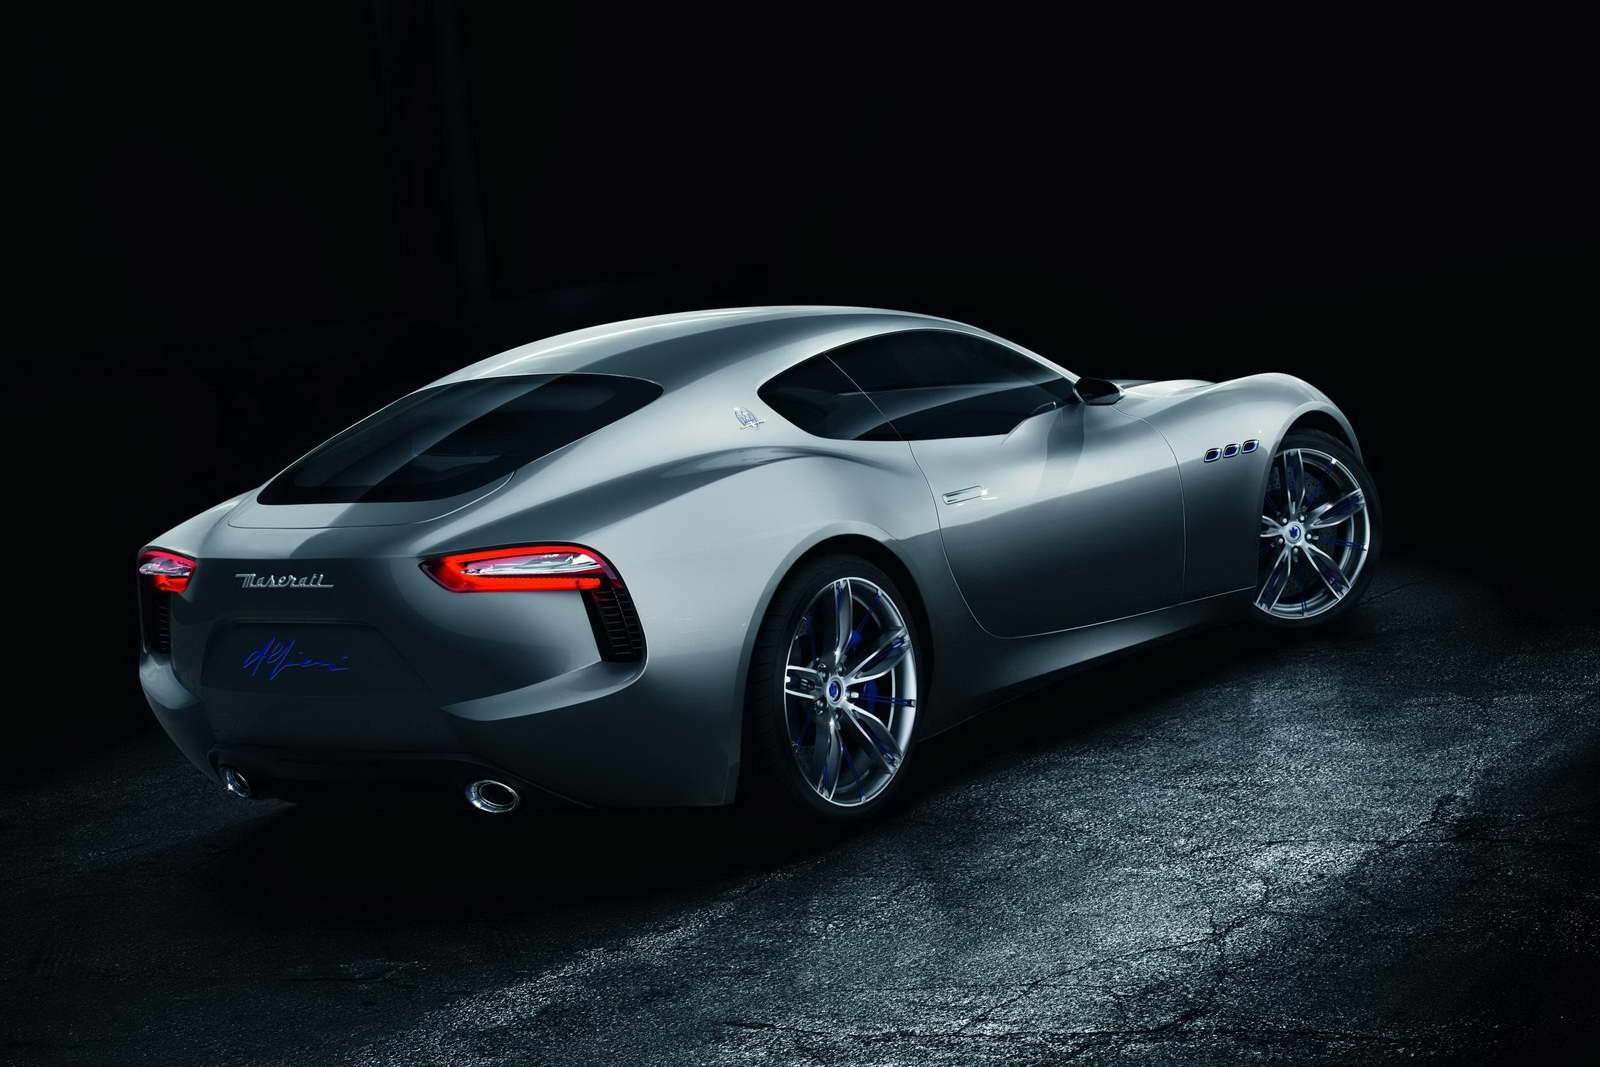 Latest Maserati Alfieri Coming To Wow Sports Car L*V*Rs Free Download